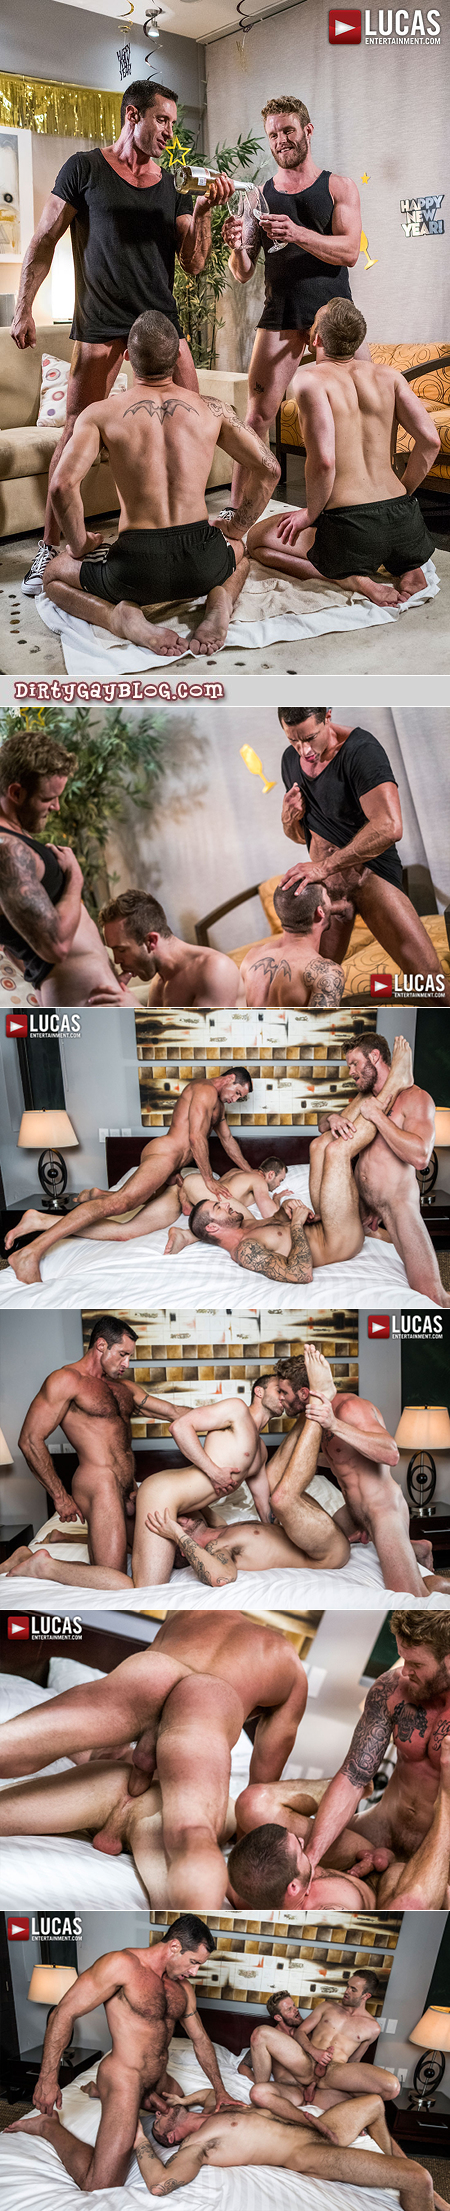 Muscular gay men having bareback group sex together.